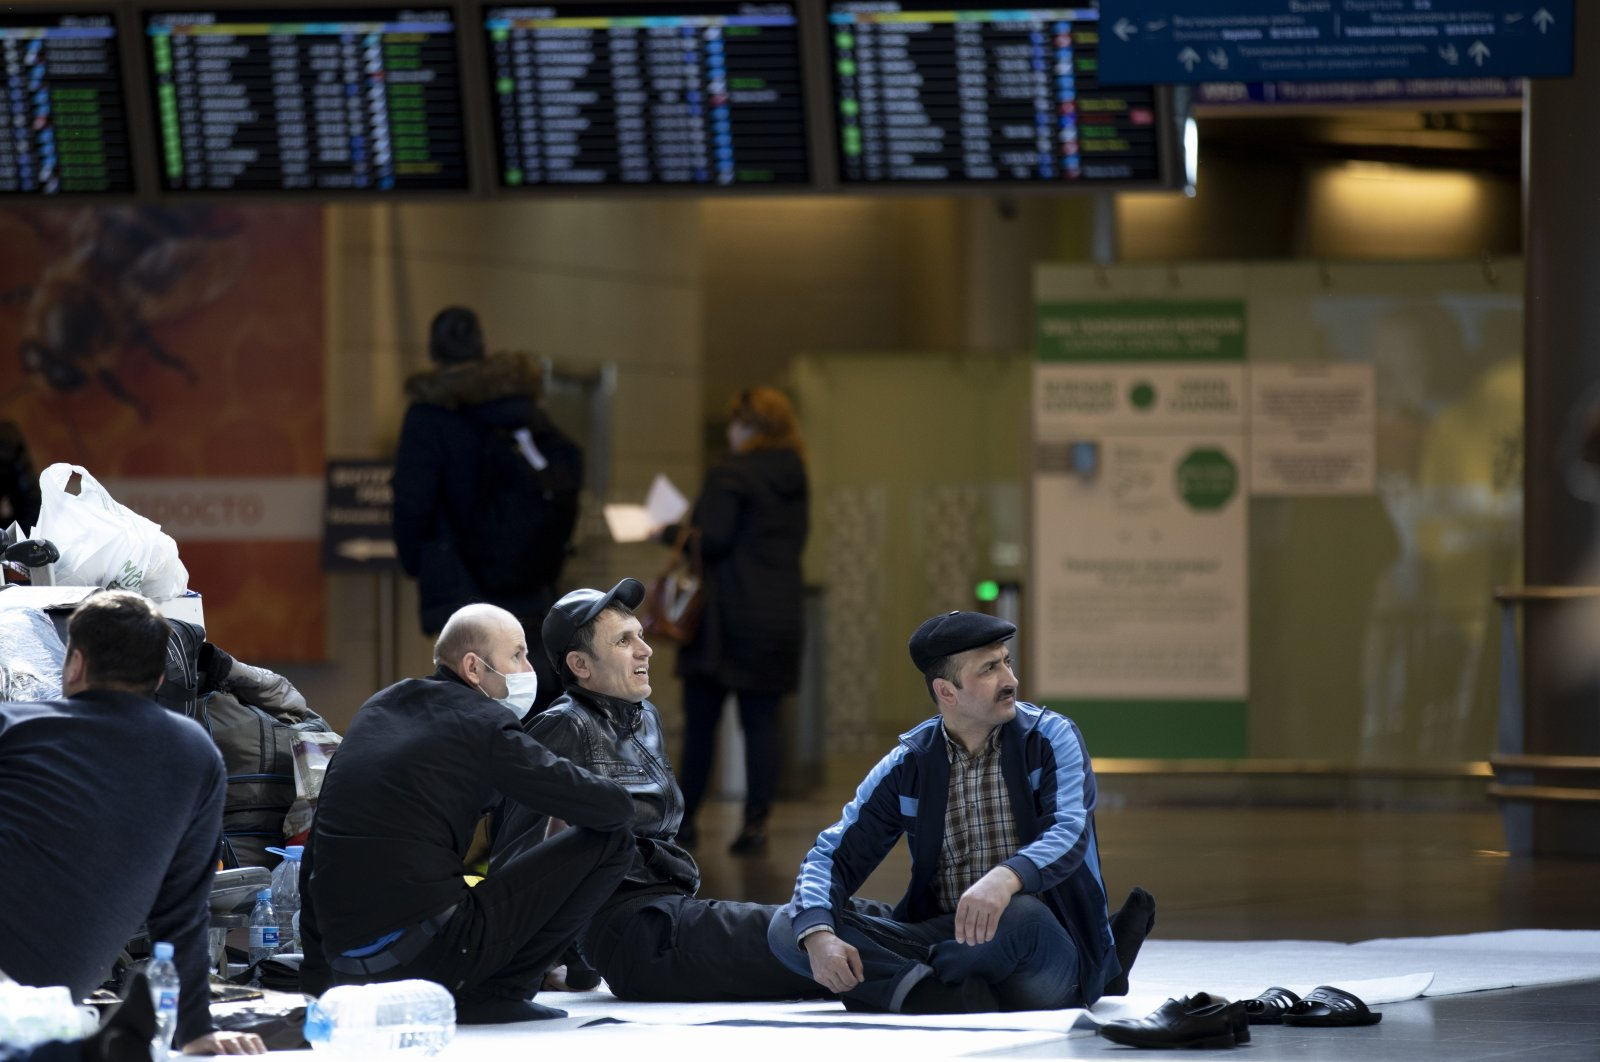 Tajikistani nationals sit on the floor waiting for a plane to return to their home country at the Vnukovo International Airport, 35 km southwest of Moscow, Russia, Tuesday, March 24, 2020. (AP Photo)